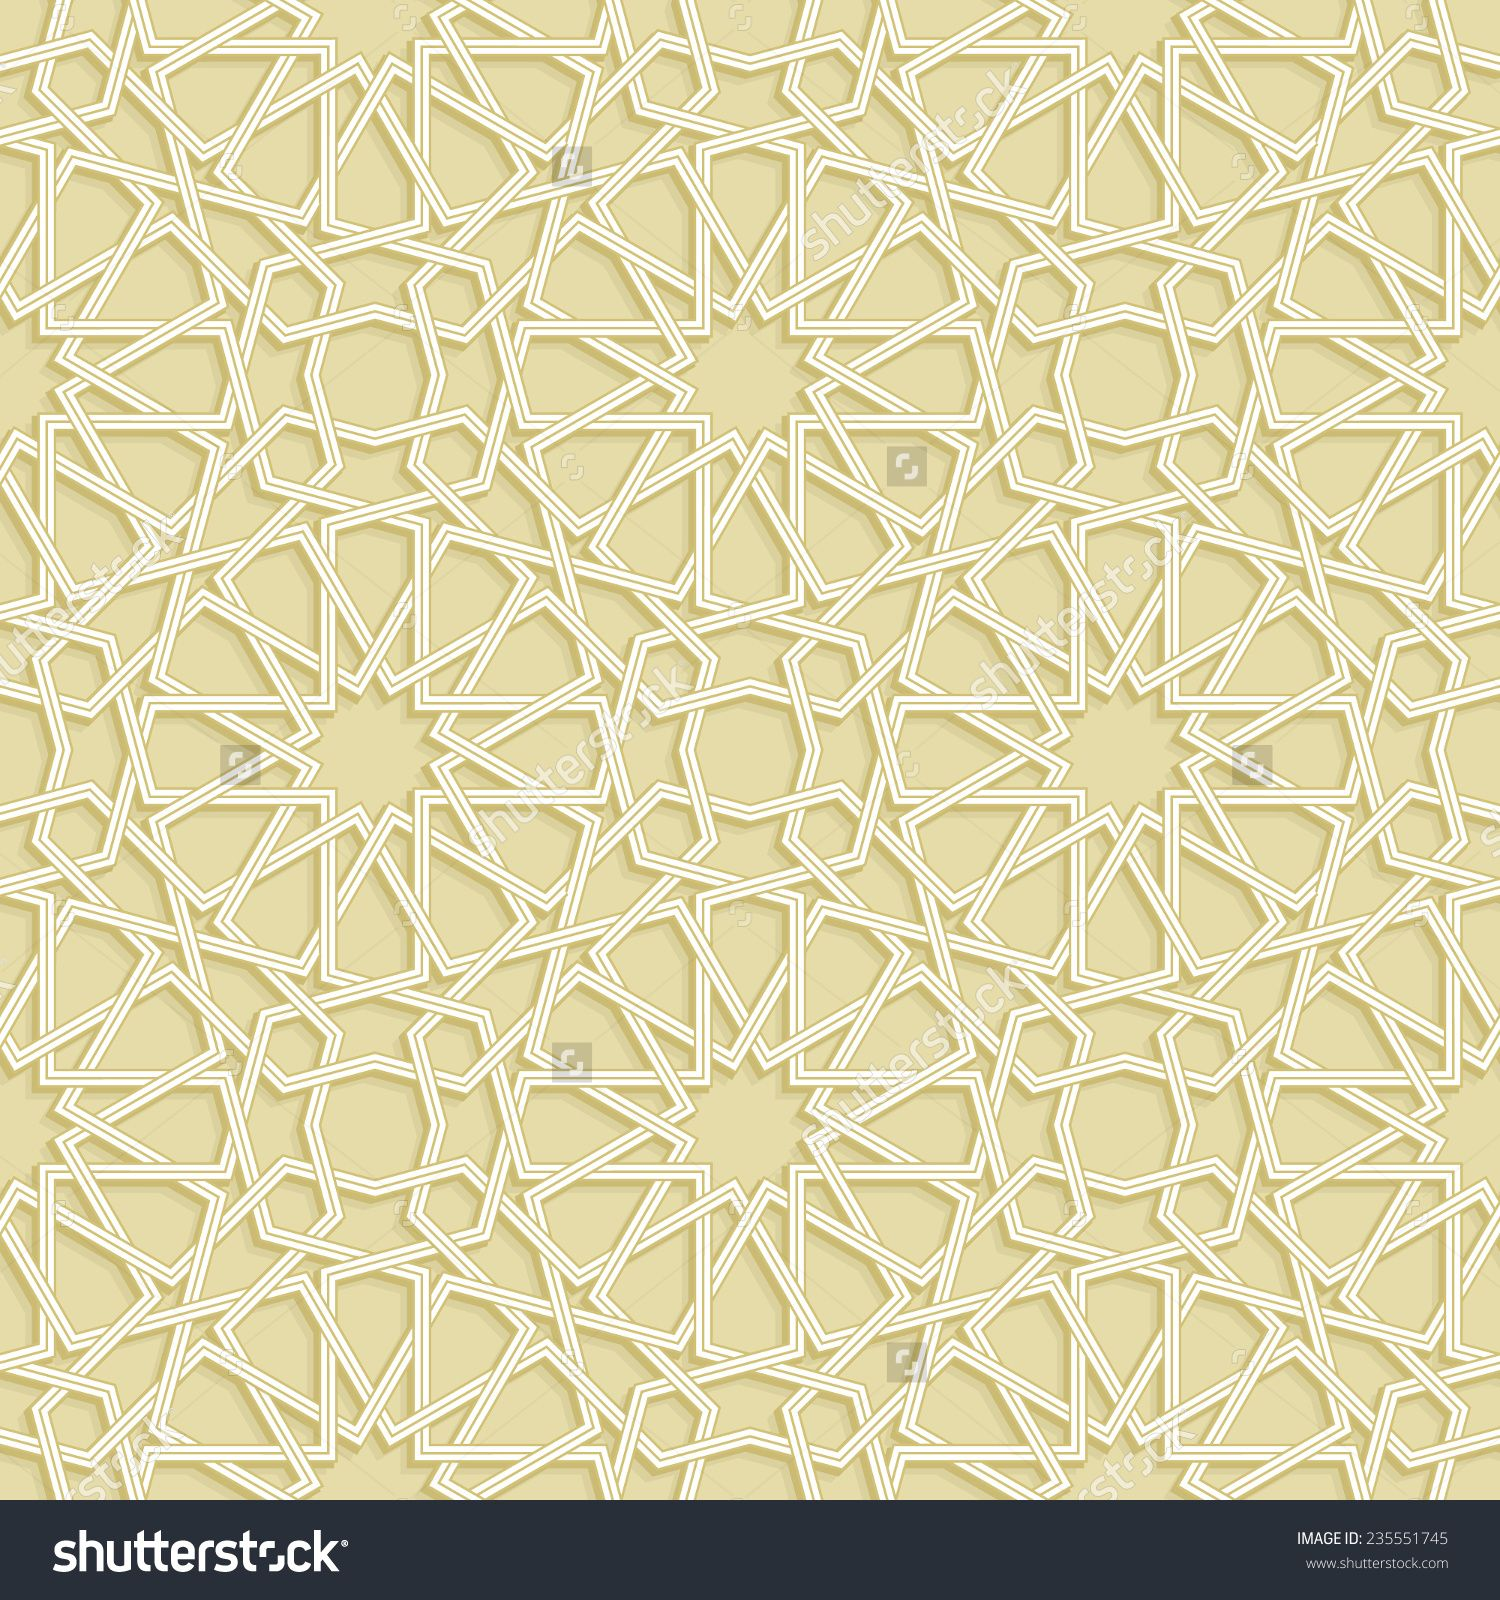 Islamic Star Gold Pattern Vector Illustration 235551745